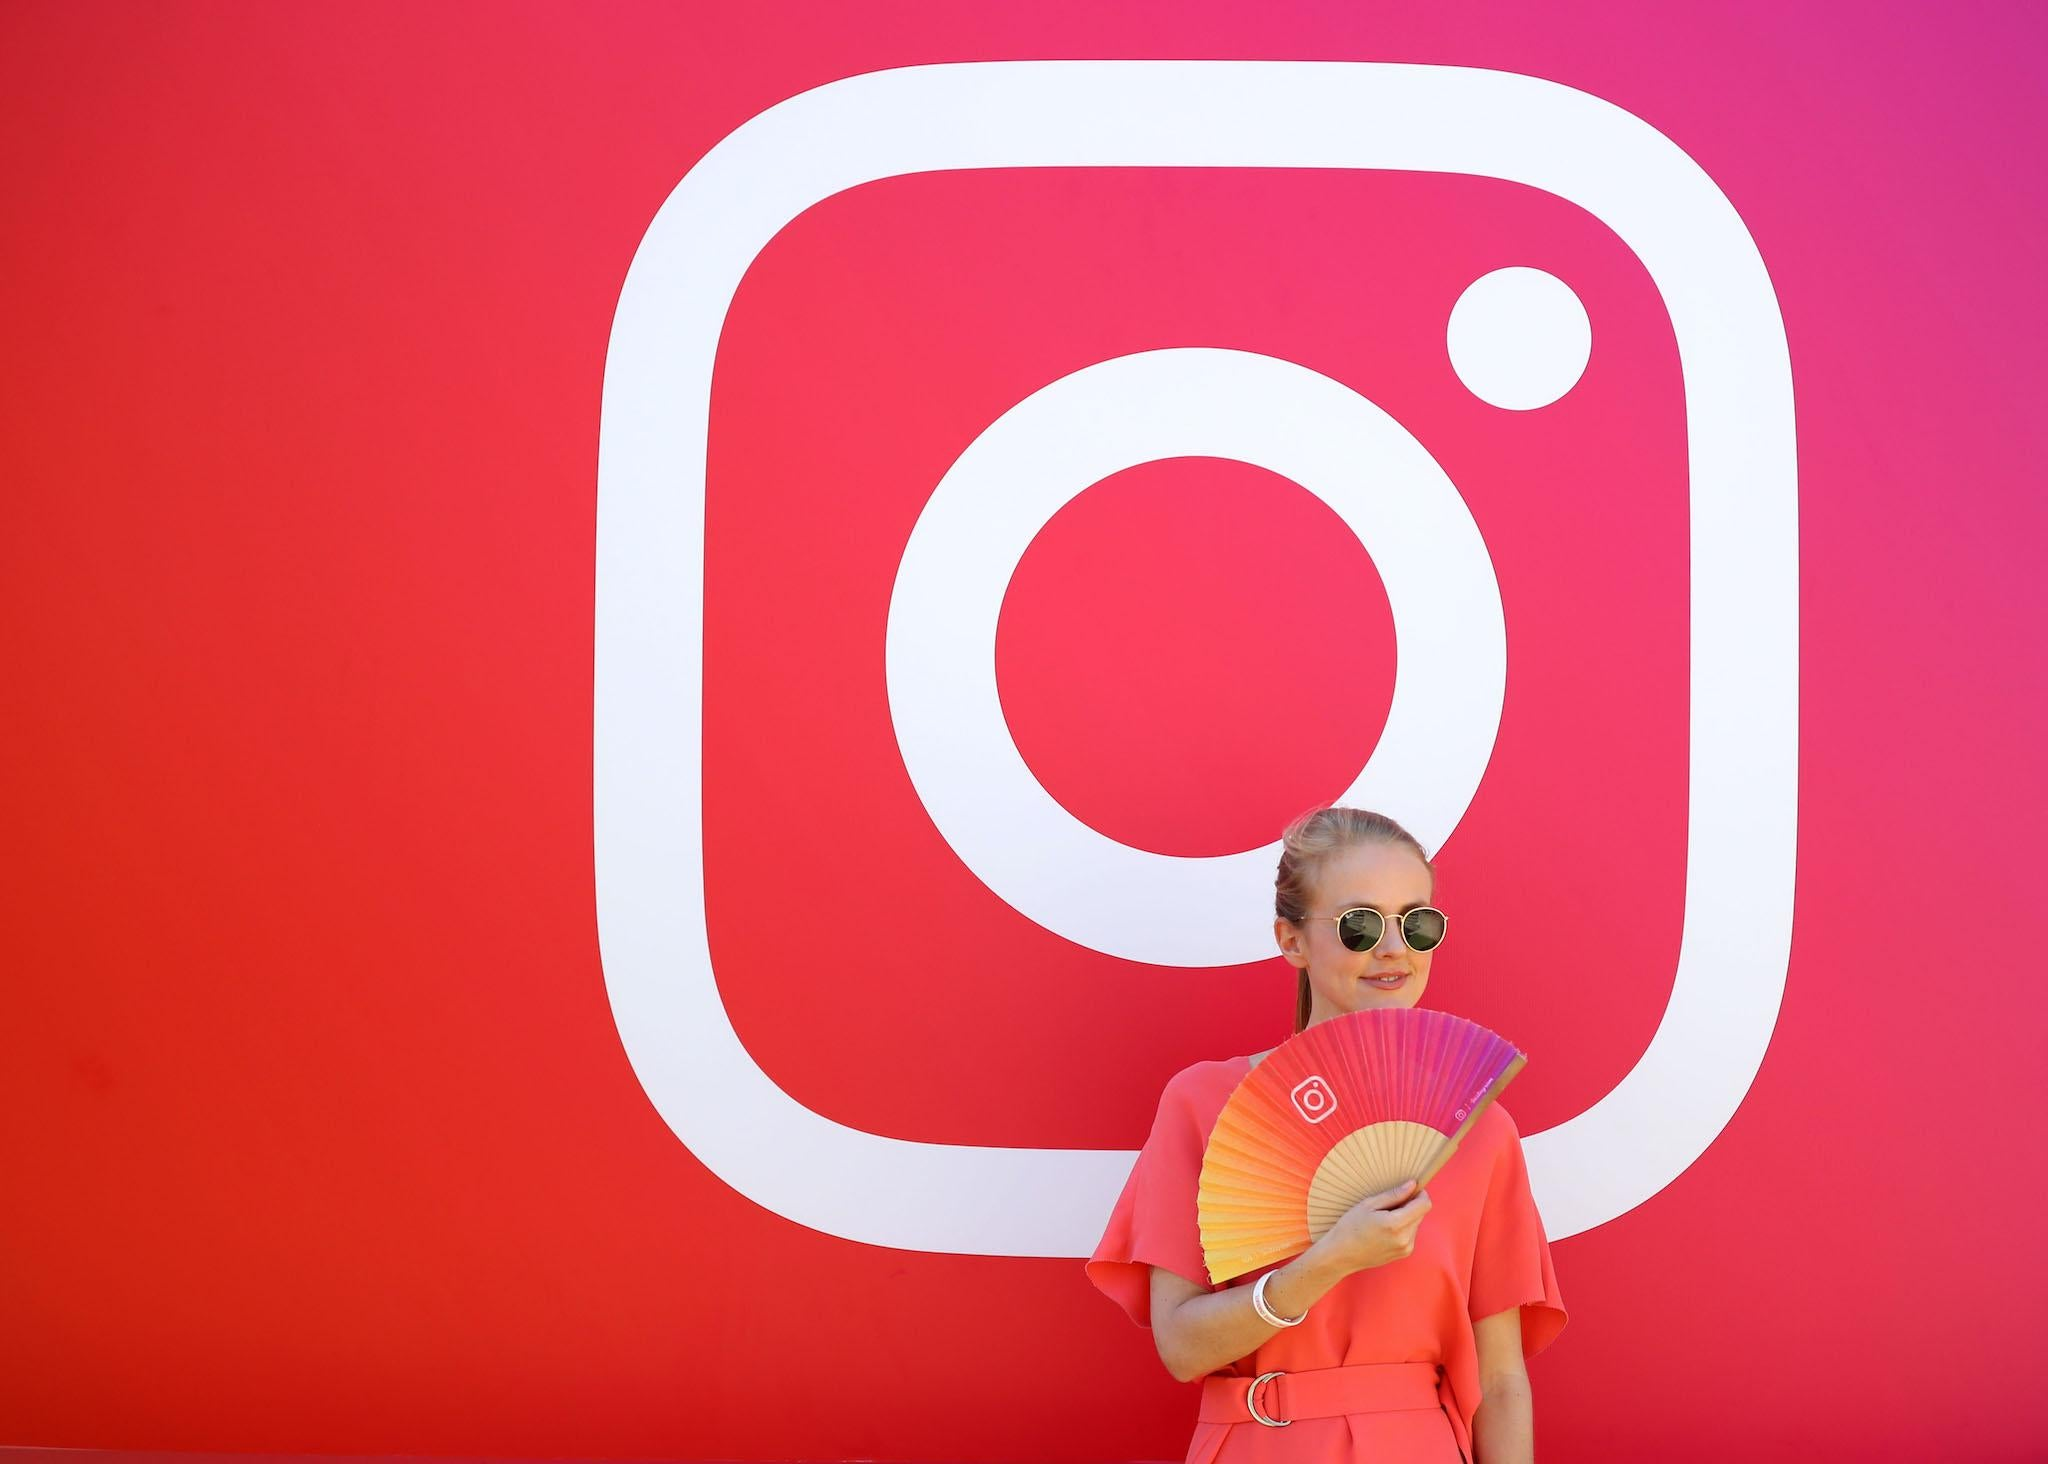 Instagram down: Some users unable to login as strange error messages appear